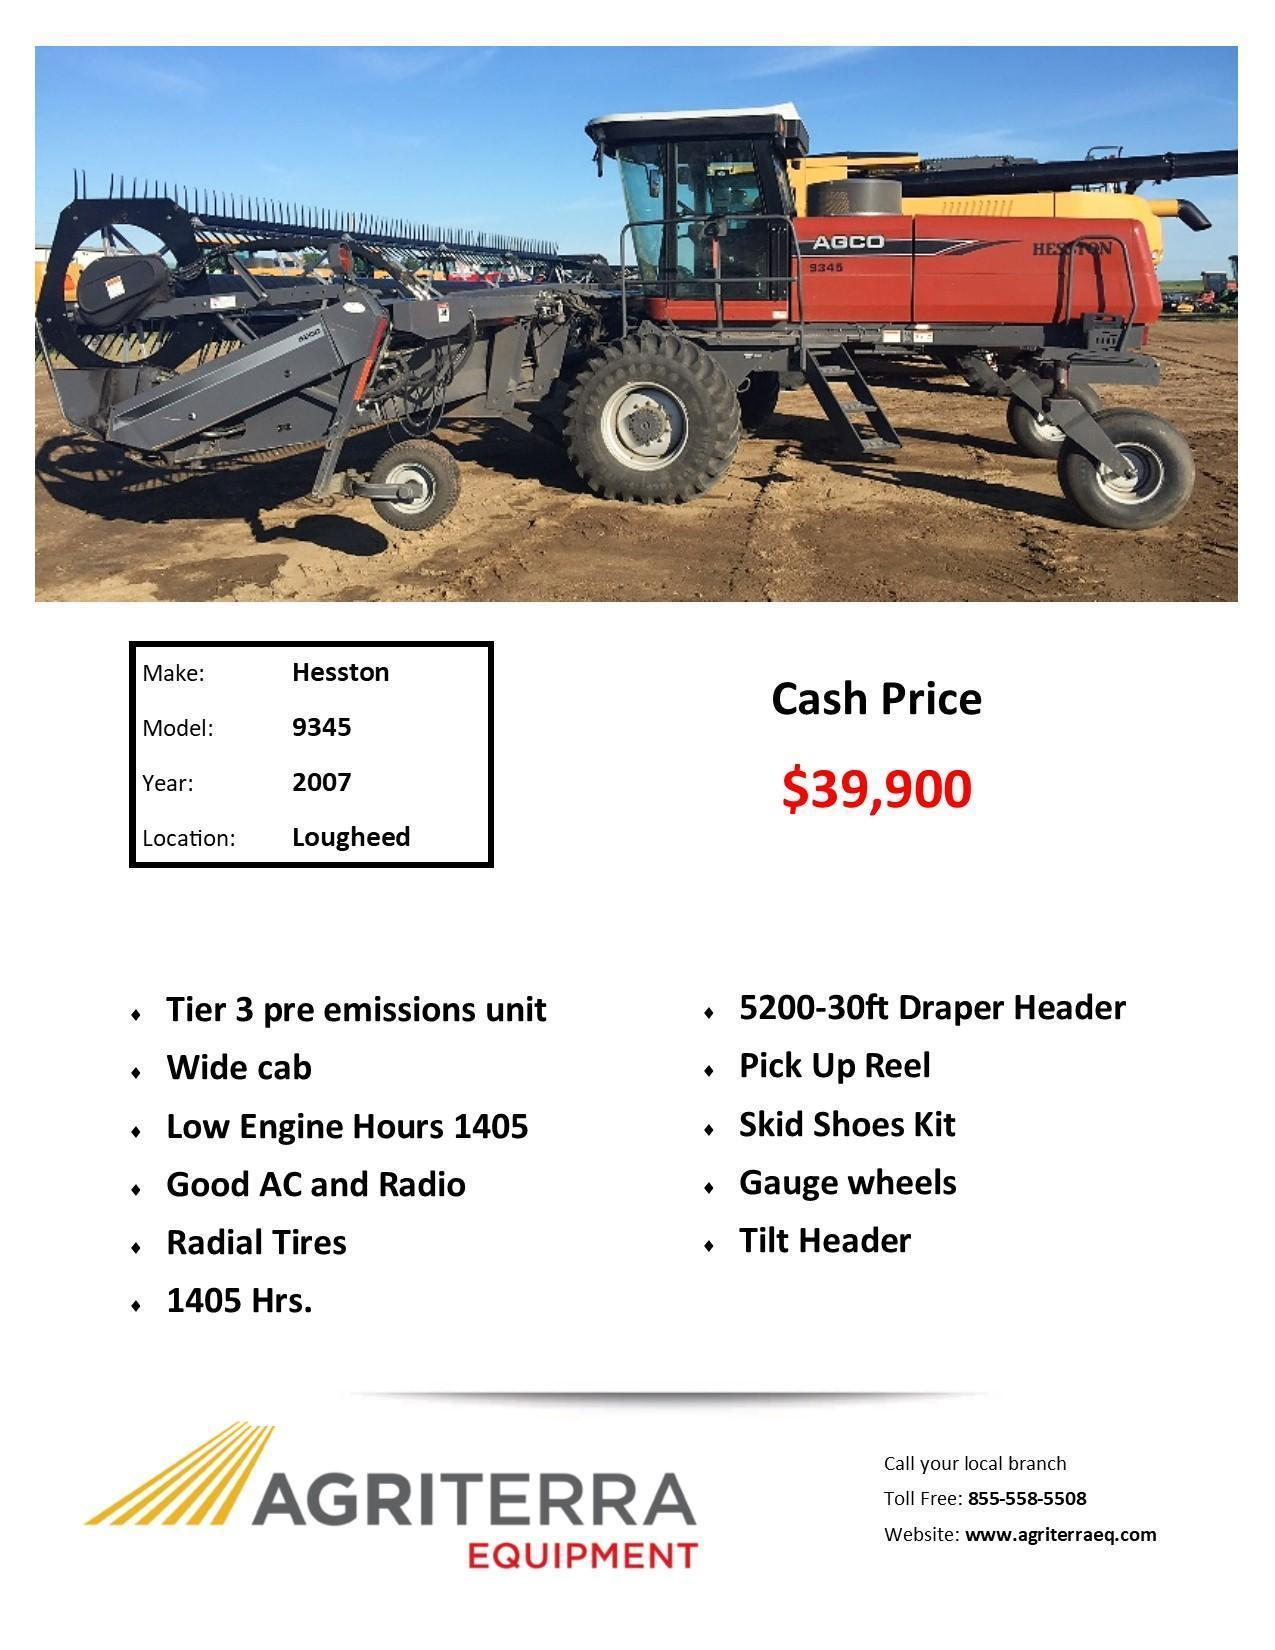 Special Promotions | Agriterra Equipment